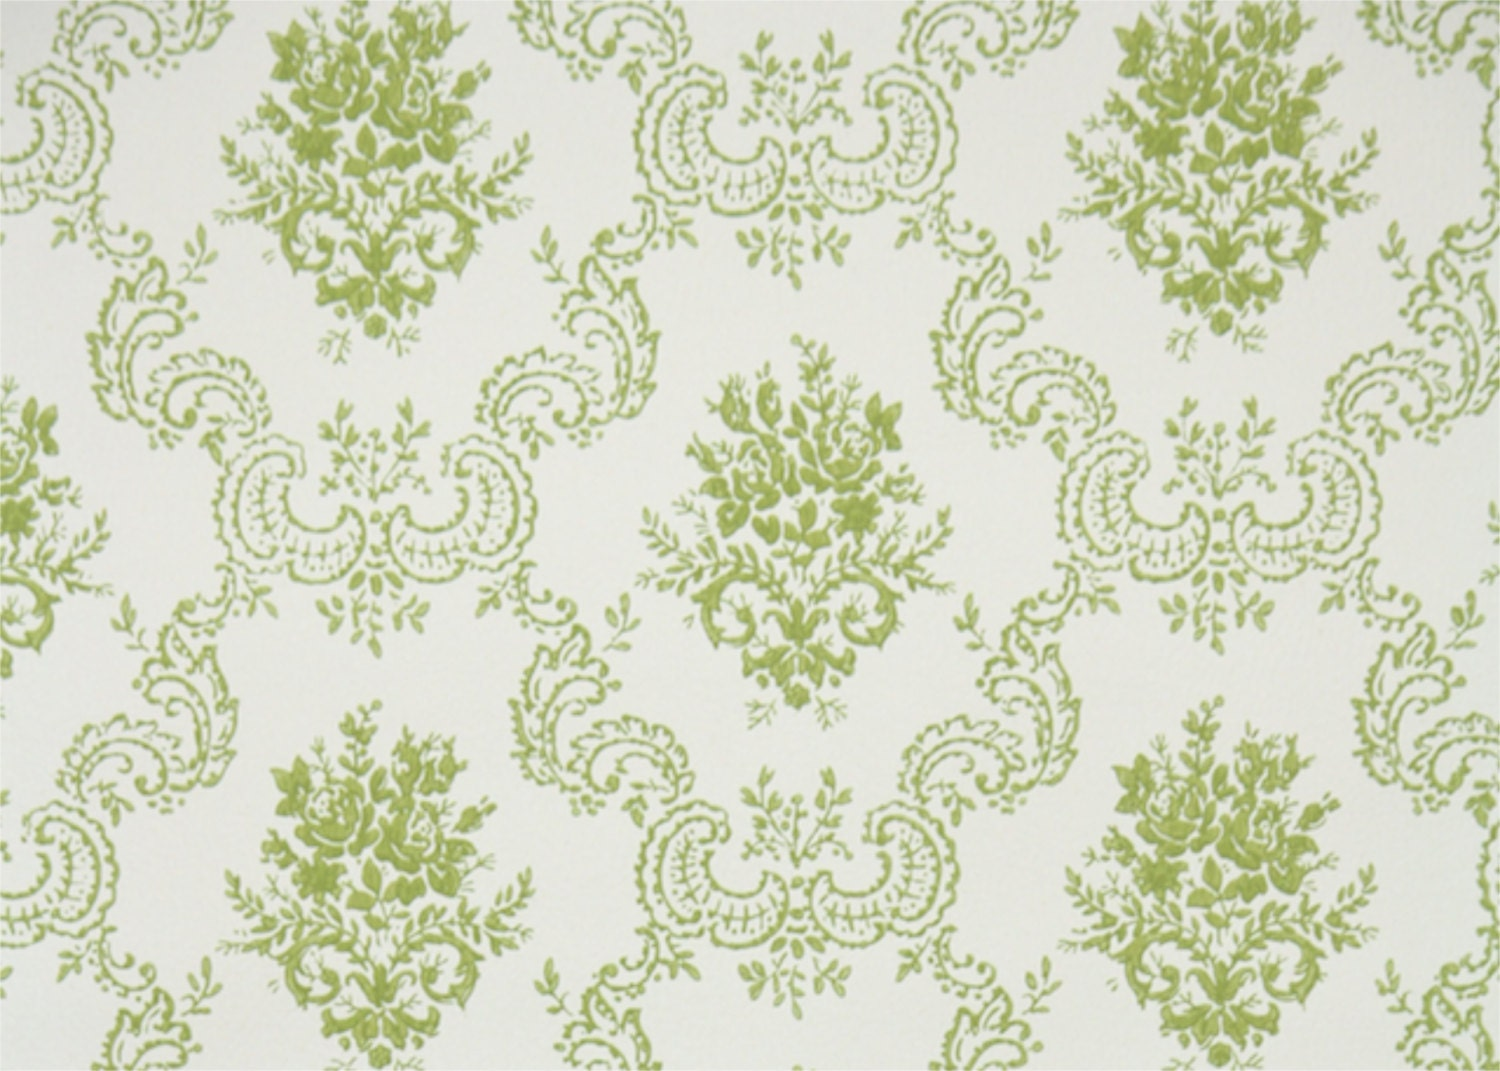 1950s vintage wallpaper by the yard green and white rose - Papier peint vintage 50 ...